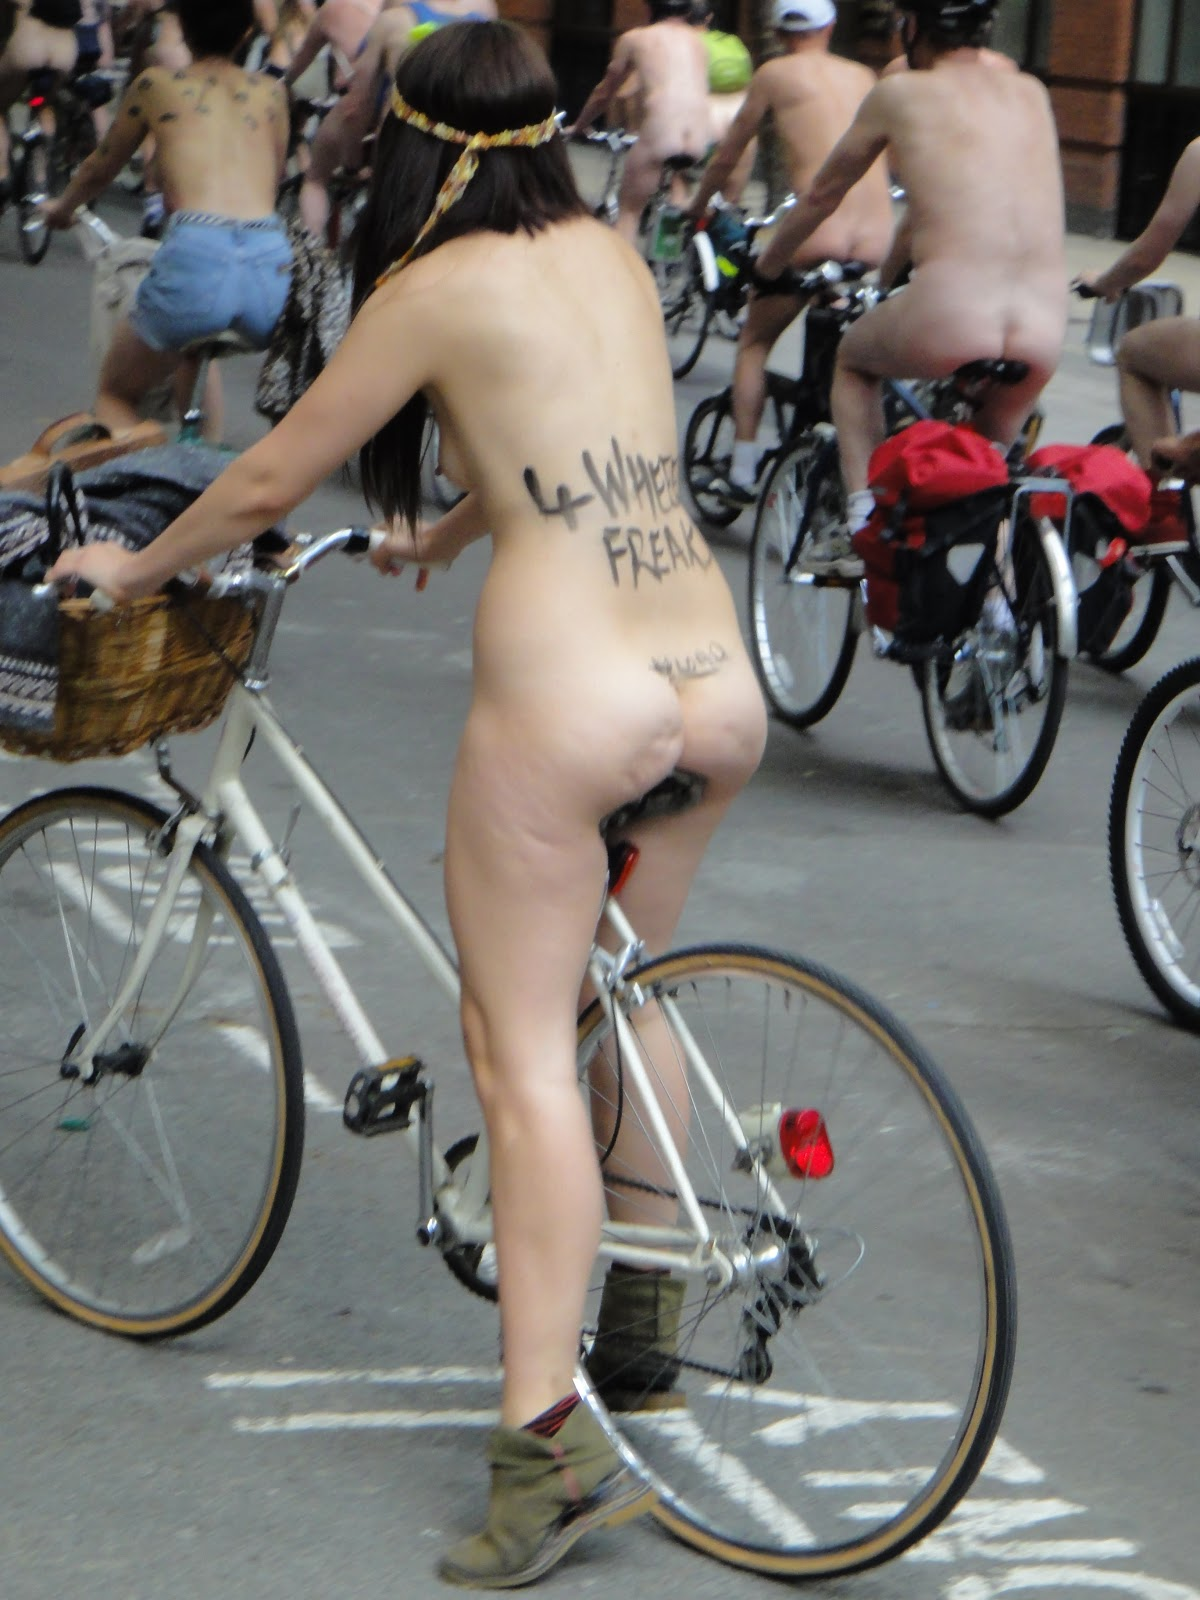 WORLD NAKED BIKE RIDE 2011: London (England) 2011